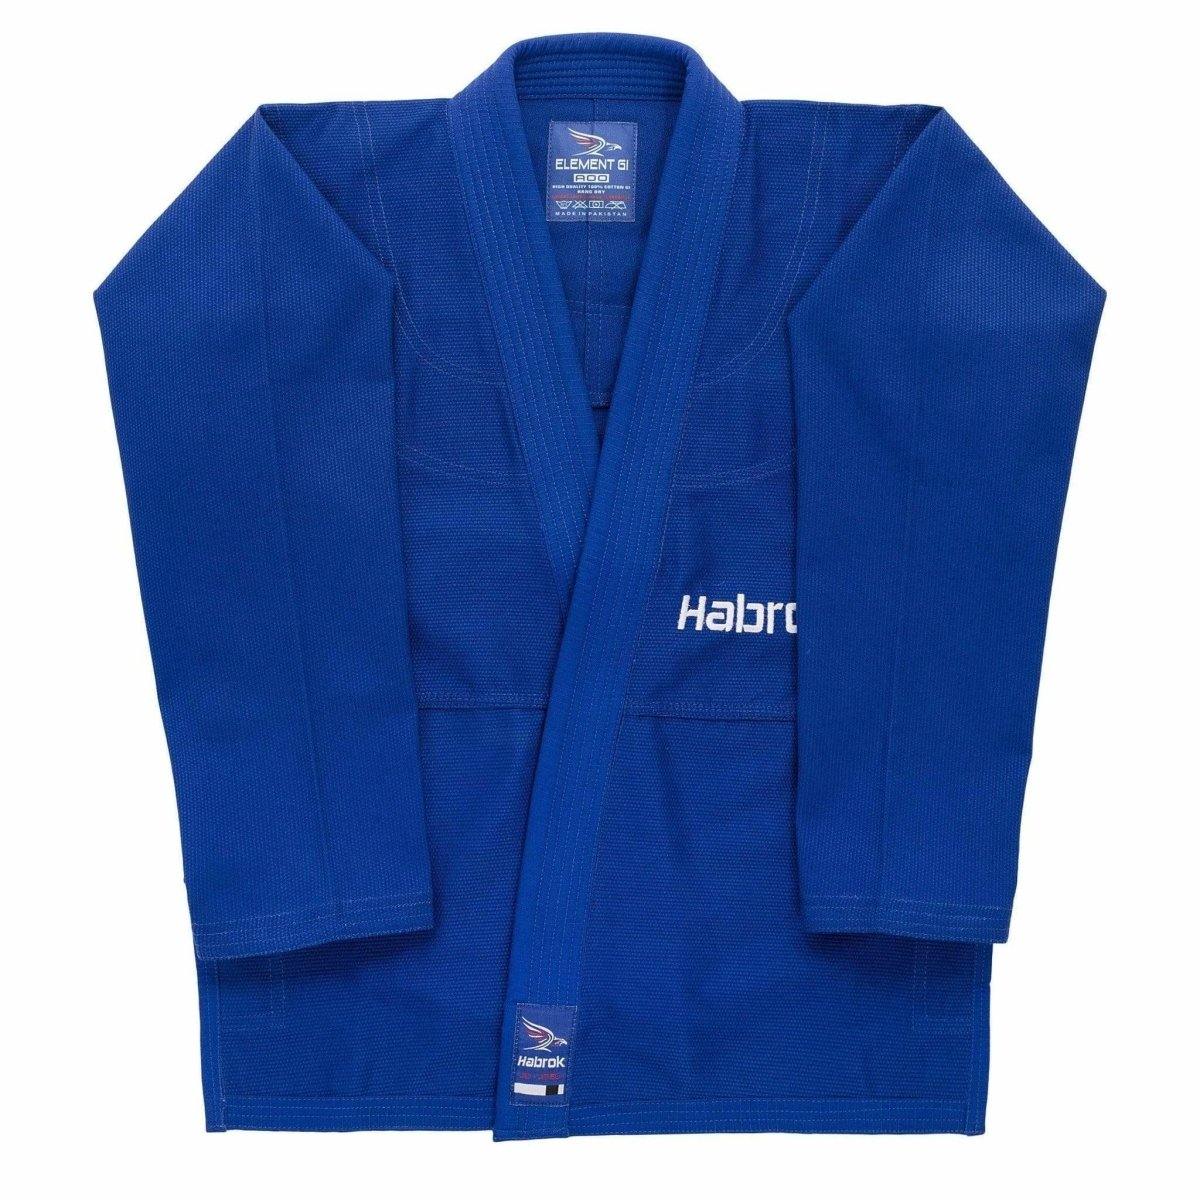 Habrok Jiu Jitsu Gi A00 / BLUE Element | BJJ Gi | Men | Ultra Light Weight | Jiu Jitsu GI Element | Jiu Jitsu Gi Men | Habrok | Ultra Light Weight